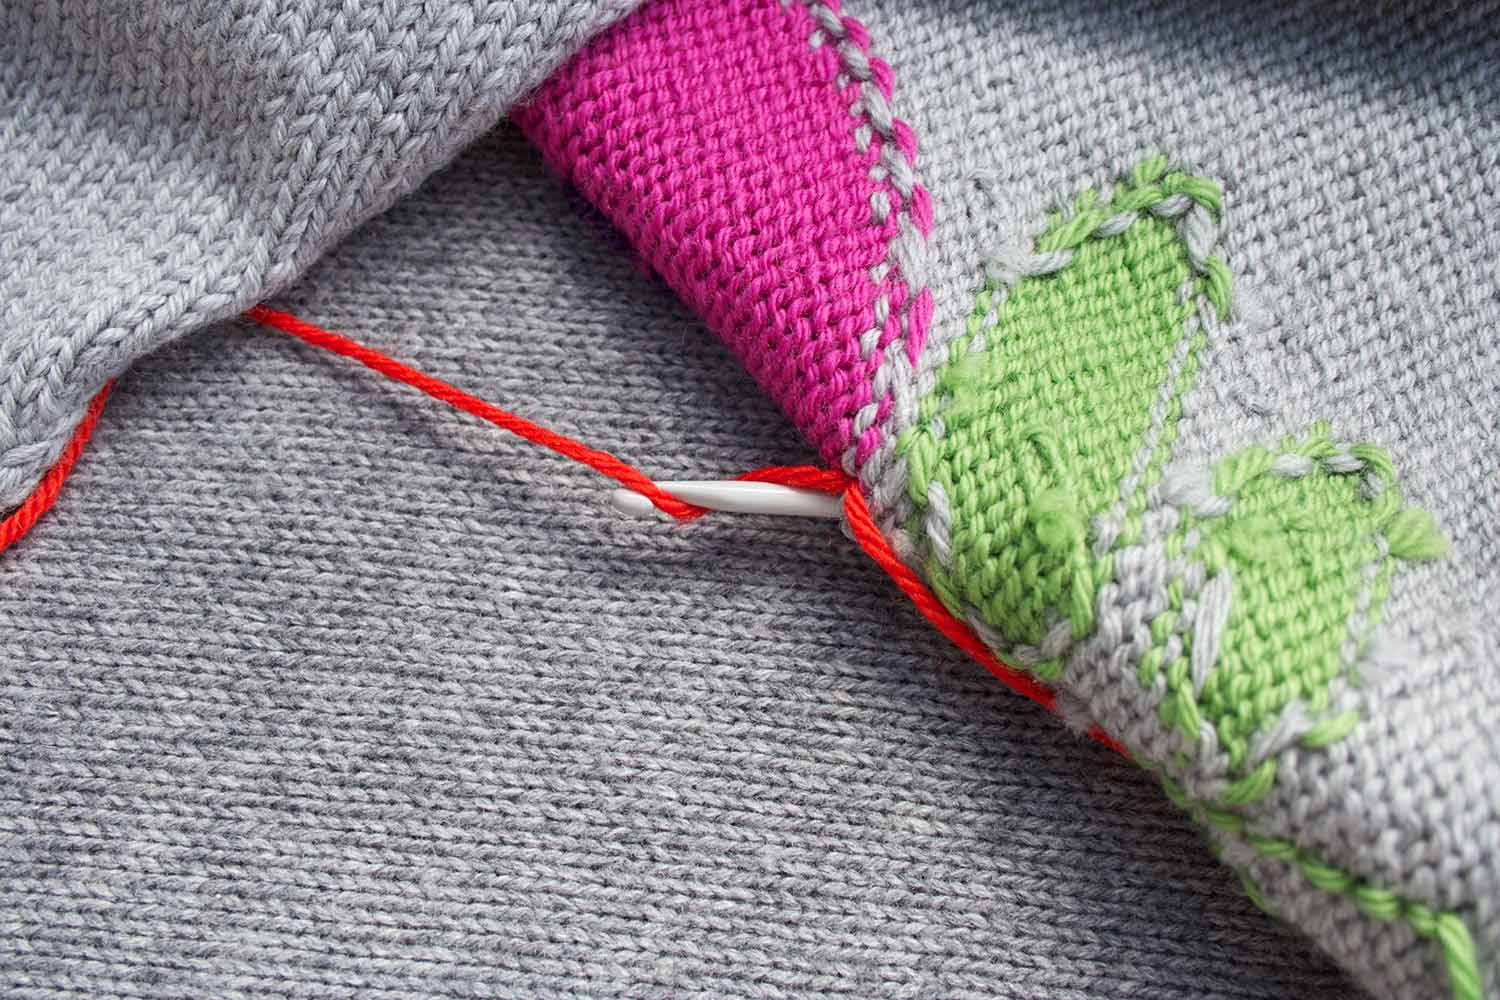 View of back side of knitted fabric with head crochet hook coming through fabric and yarn wrapped around the hook.